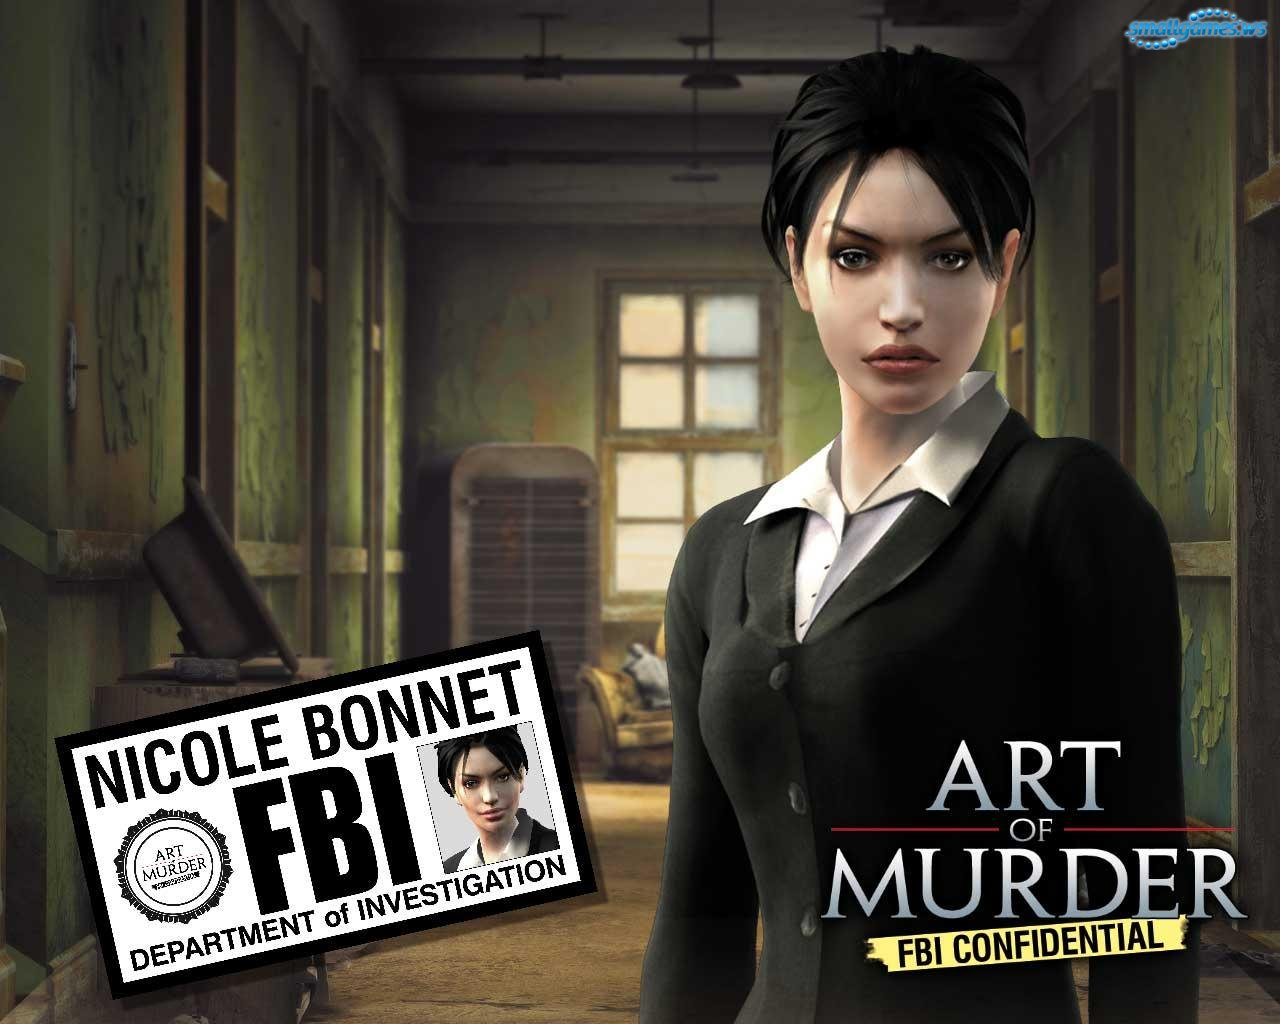 http://smallgames.ws/uploads/posts/2011-02/1296937715_smallgames.ws_art_of_murder_fbi_confidential-2.jpg